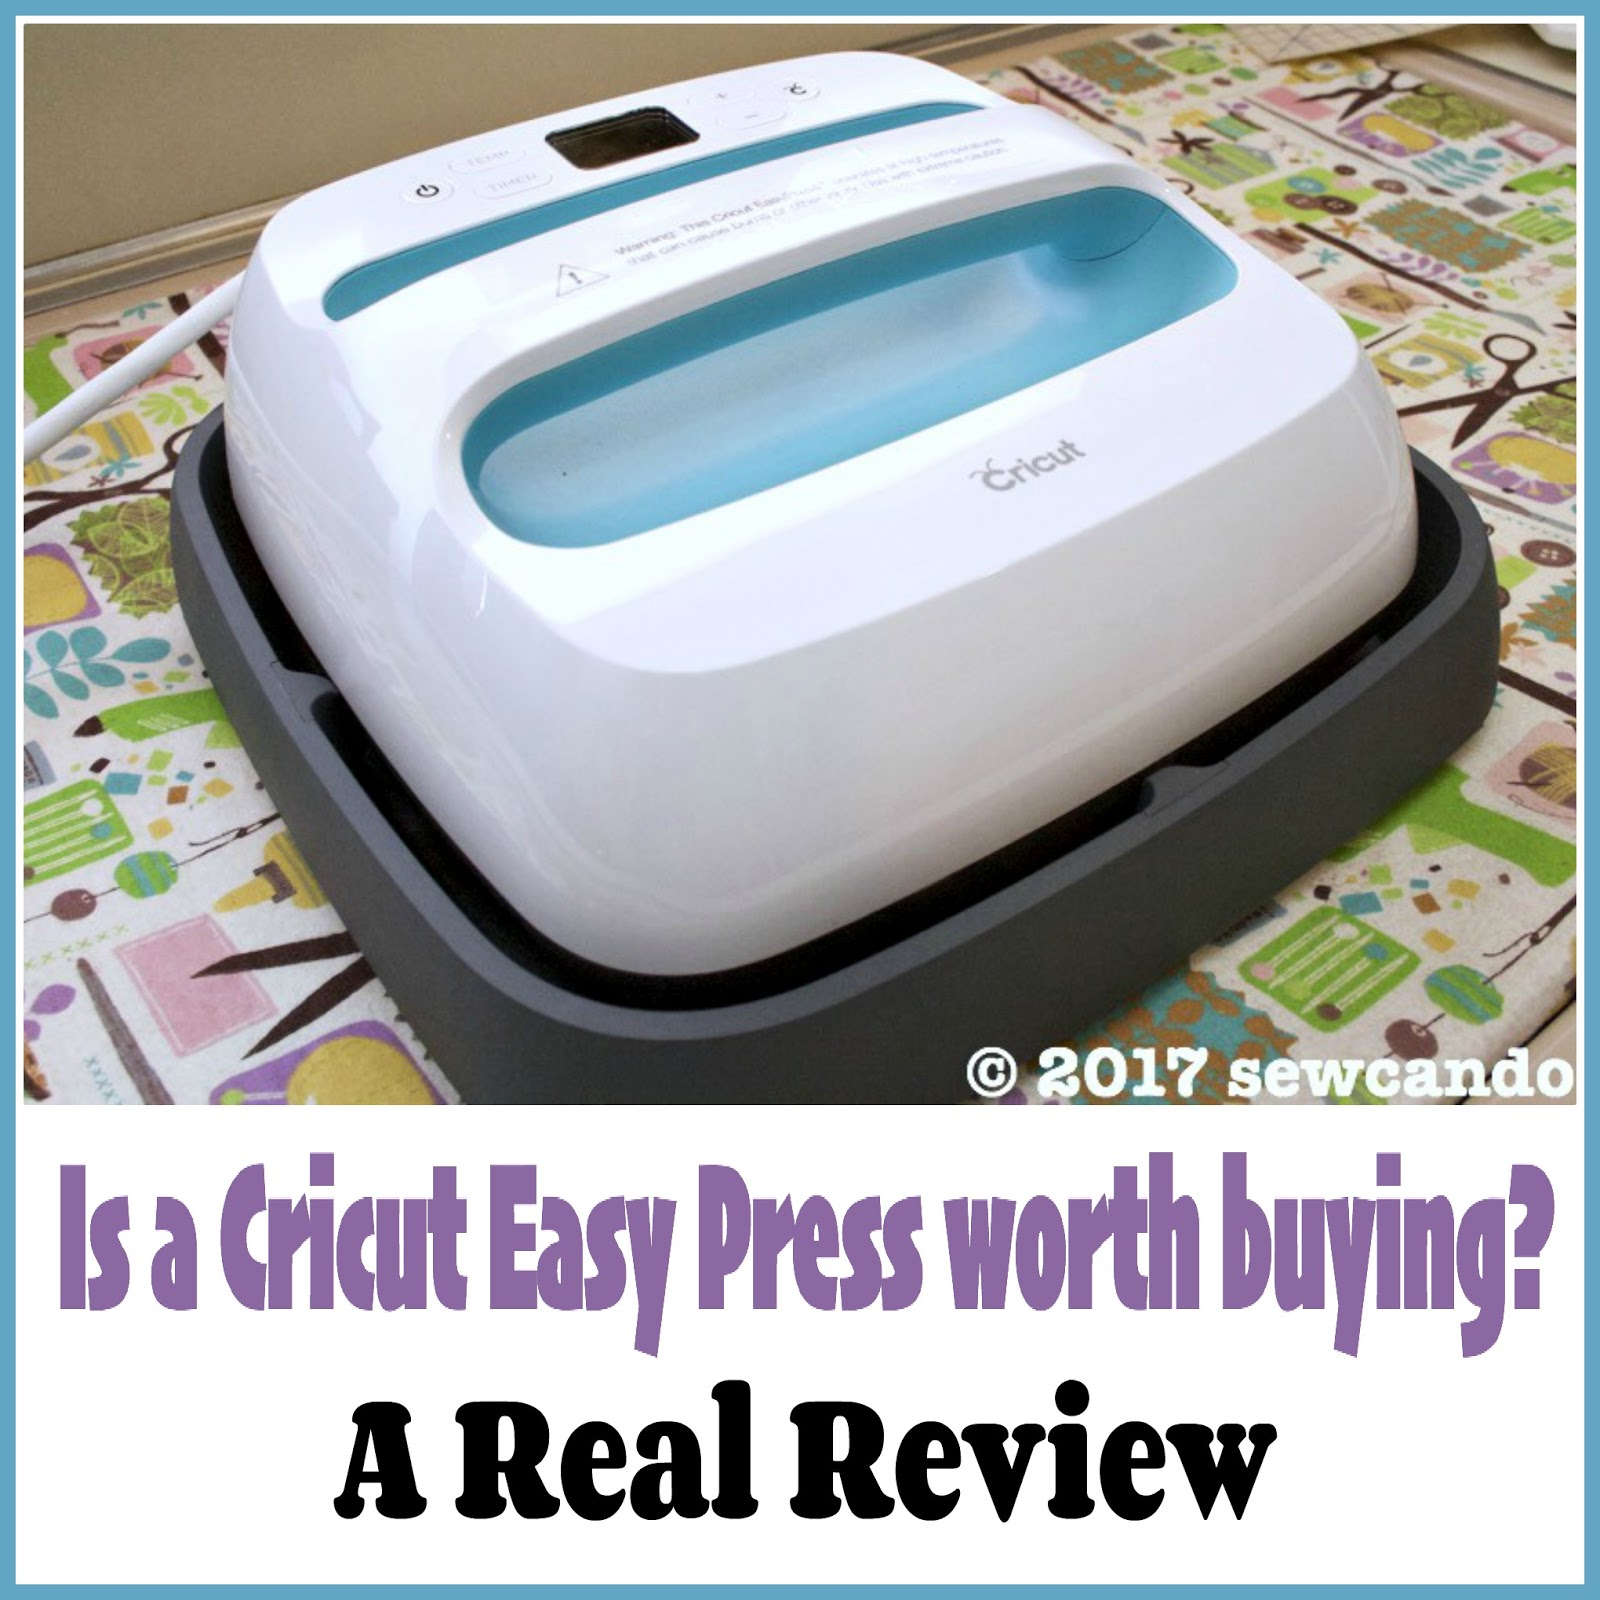 Sew Can Do: Should You Buy a Cricut Easy Press? A Real Review